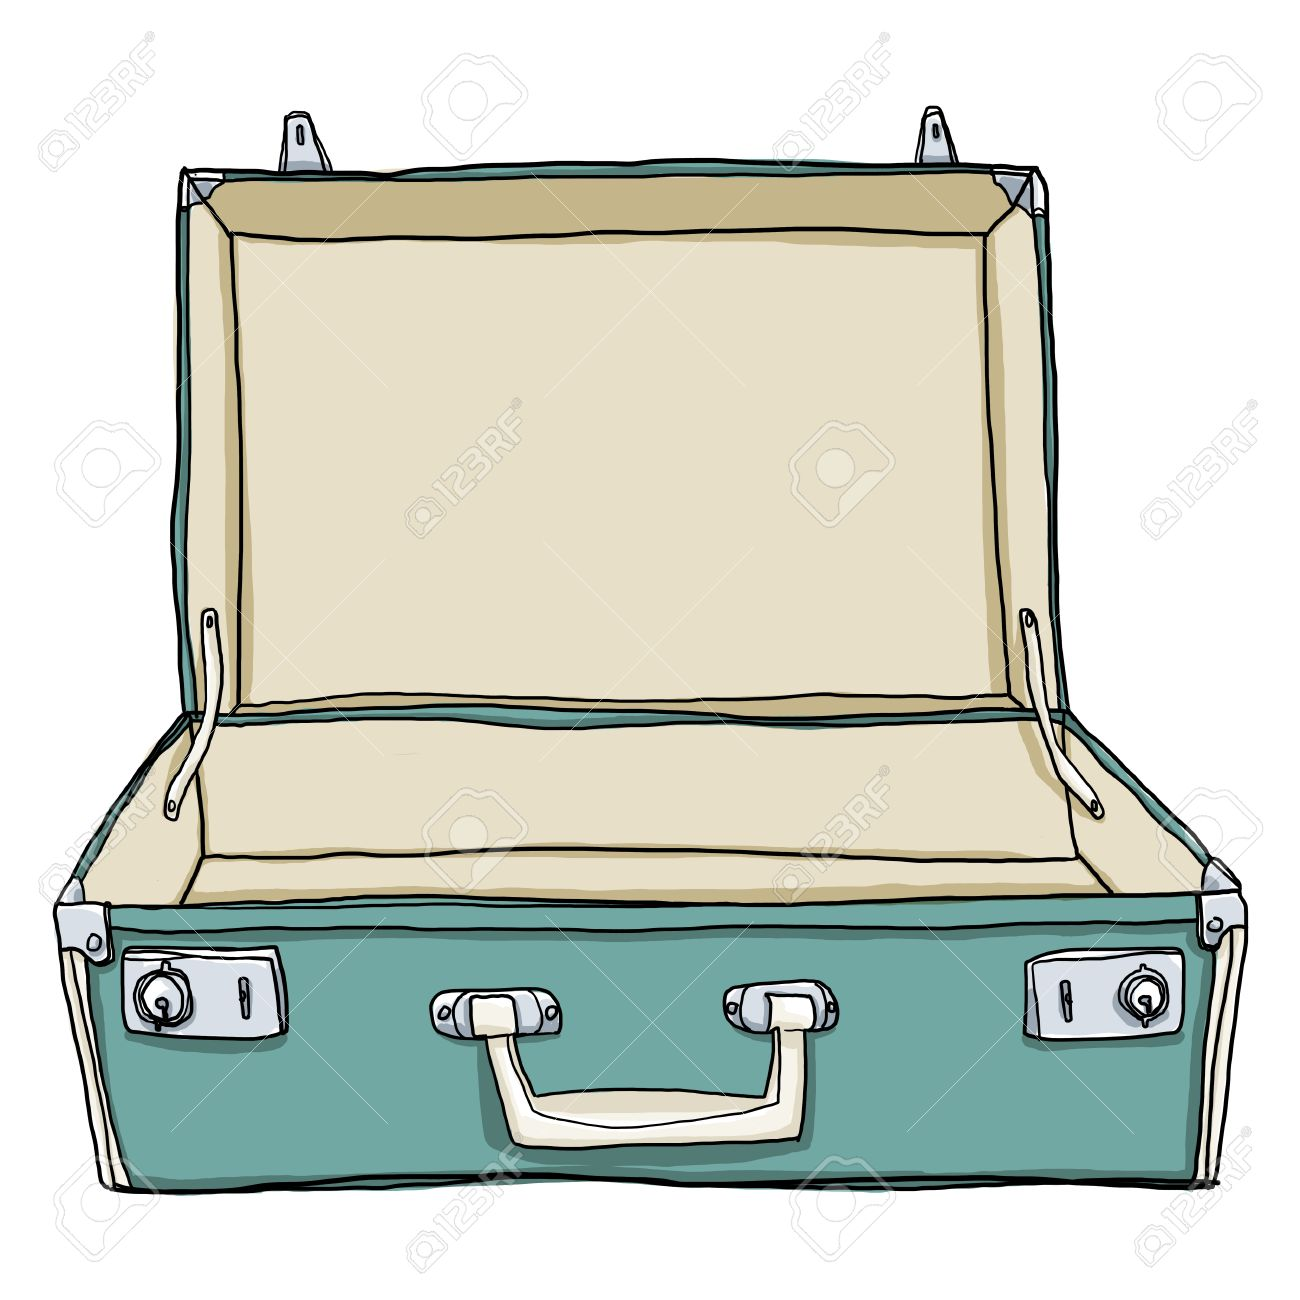 Image result for empty suitcase